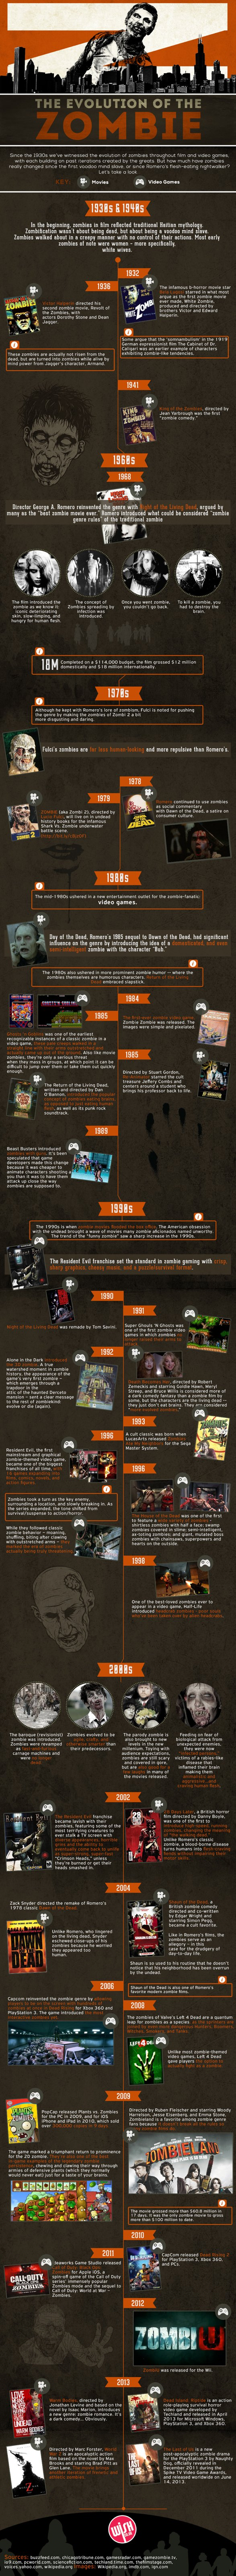 Zombie History Illustrated-Infographic